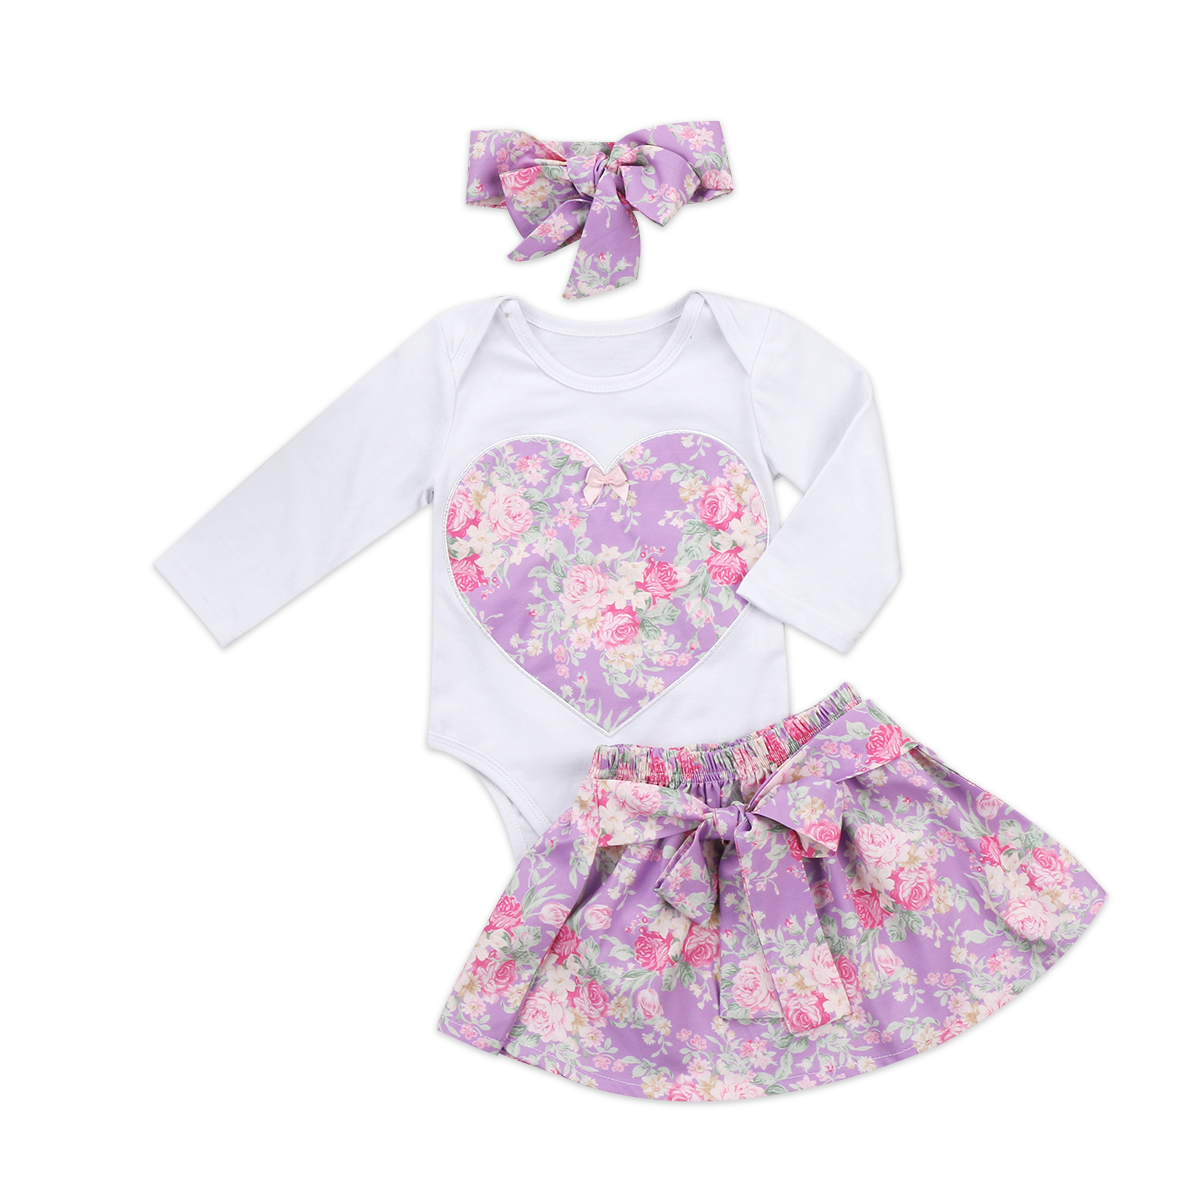 Baby Girls Clothes Sets Outfits Long Sleeve Tops Bodysuits Cotton Flower Skirts Headbands Floral 3pcs Clothing Baby Girl princess toddler kids baby girl clothes sets sequins tops vest tutu skirts cute ball headband 3pcs outfits set girls clothing